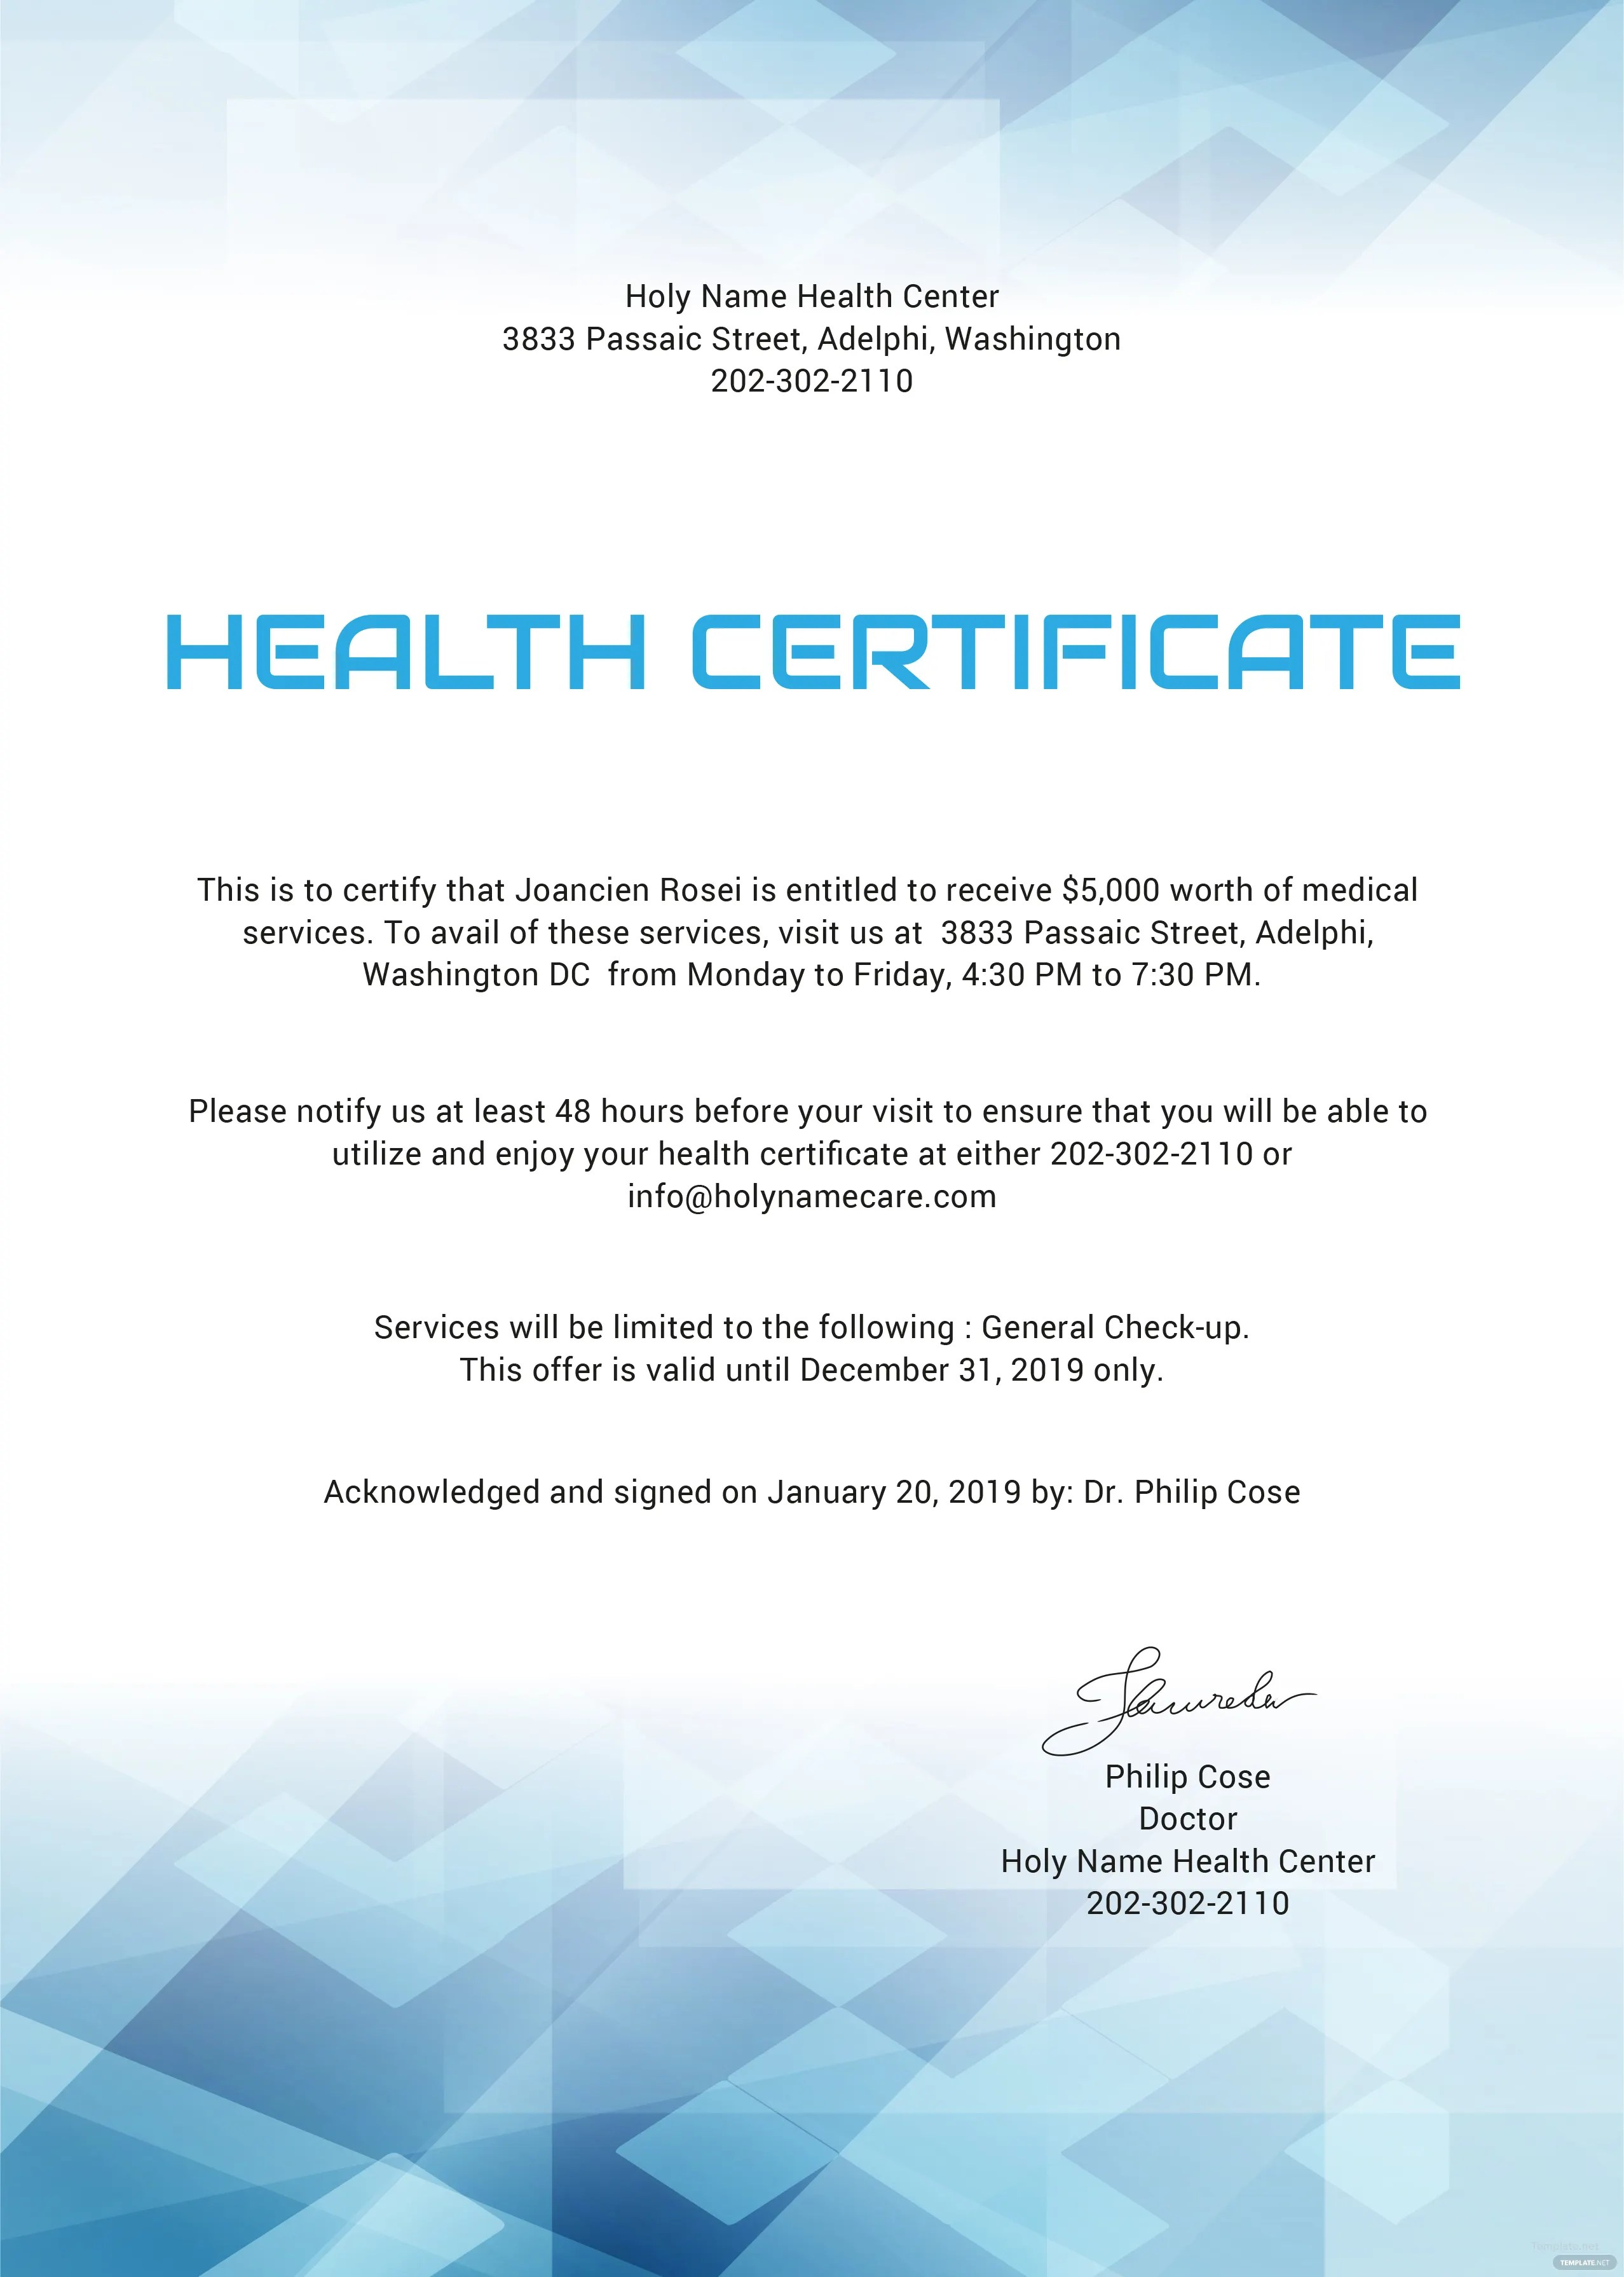 Free Health Certificate Template In Microsoft Word